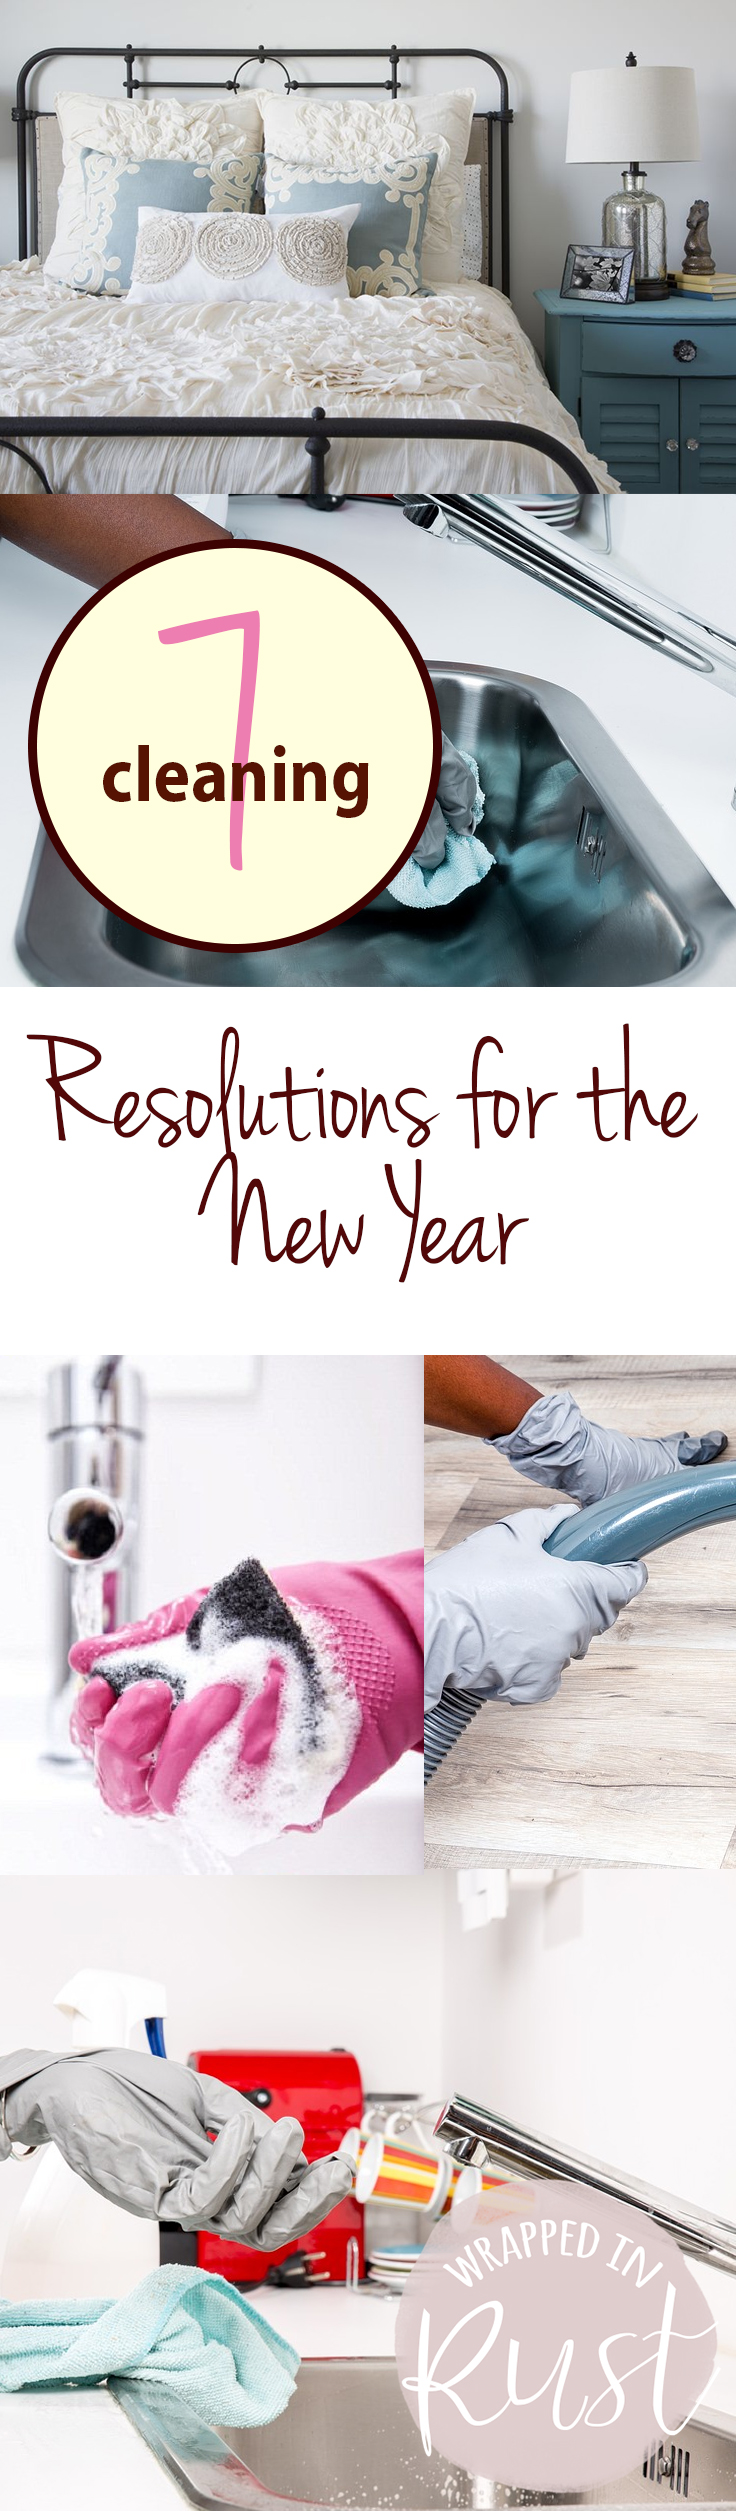 Forum on this topic: New Year Cleaning Tips, new-year-cleaning-tips/